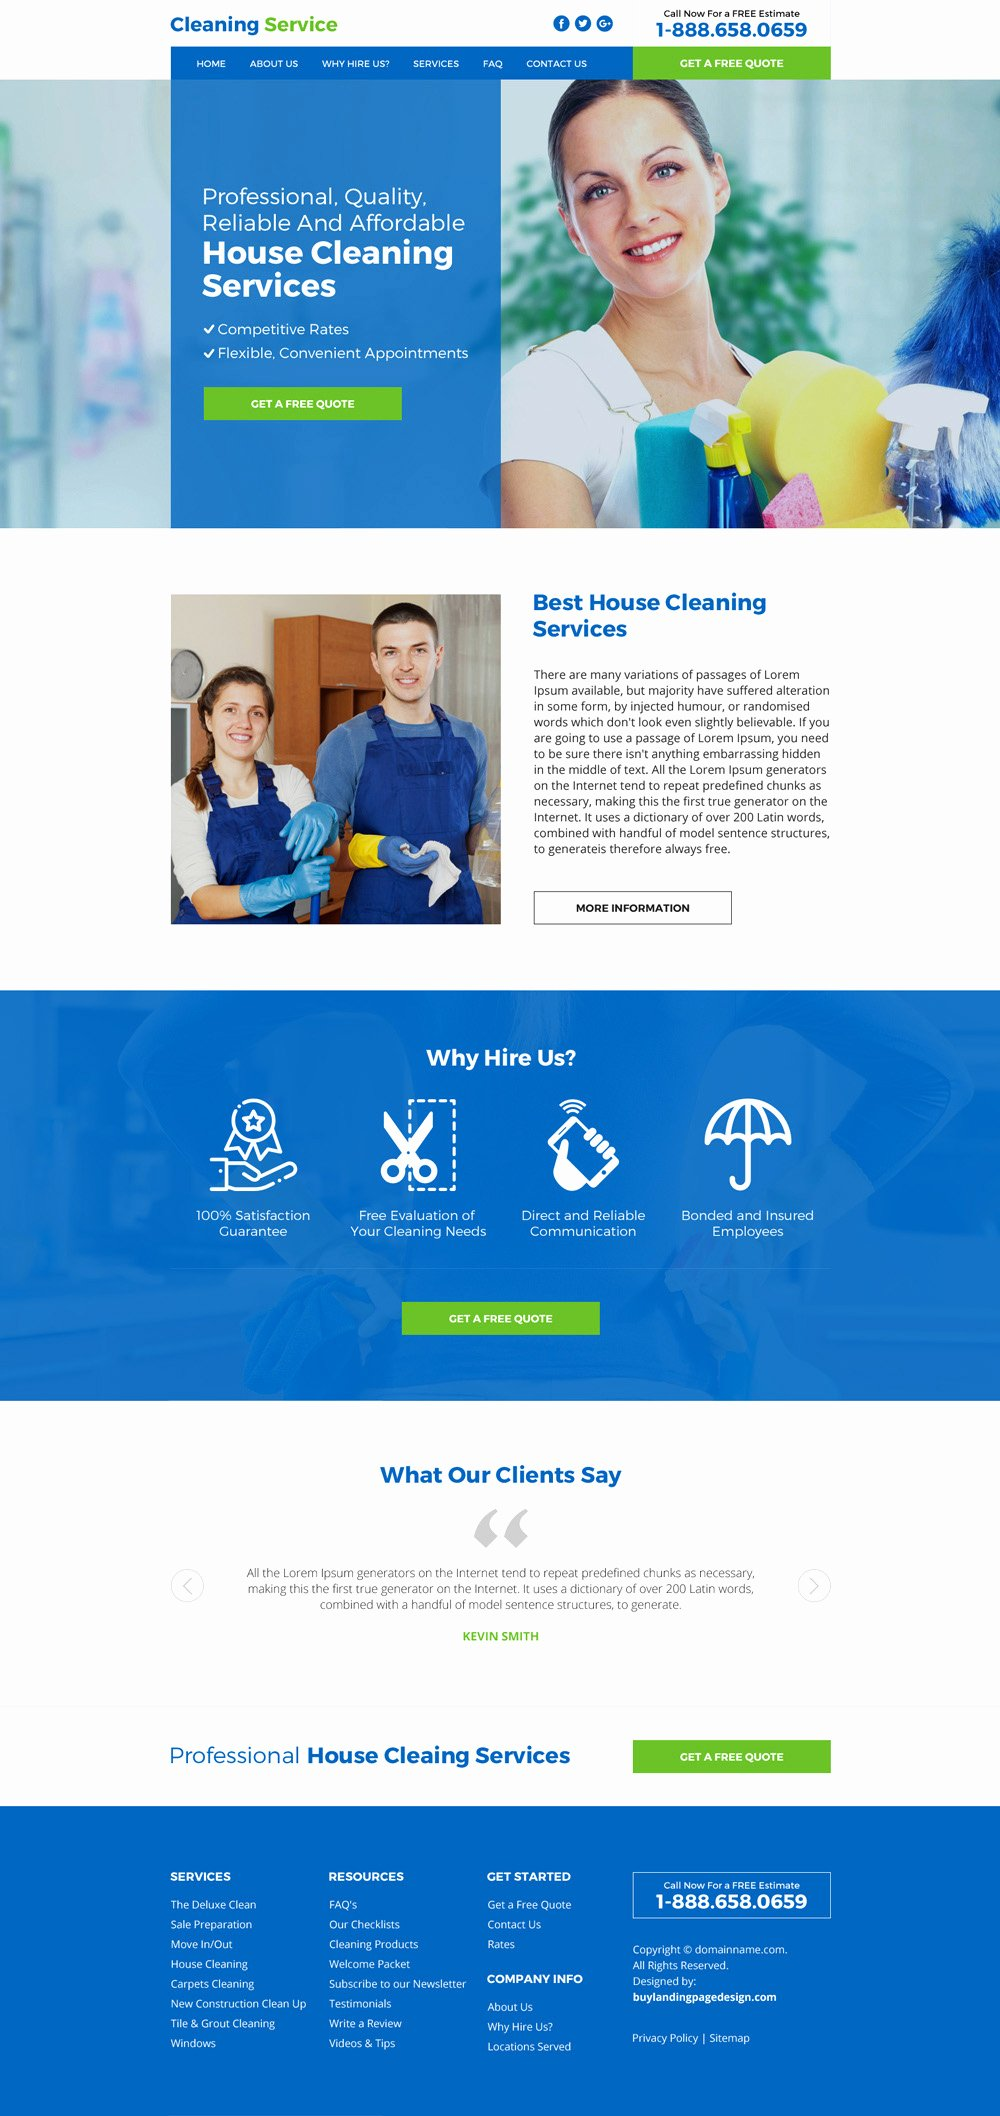 Cleaning Services Website Template Elegant House Cleaning Service Website Design 05